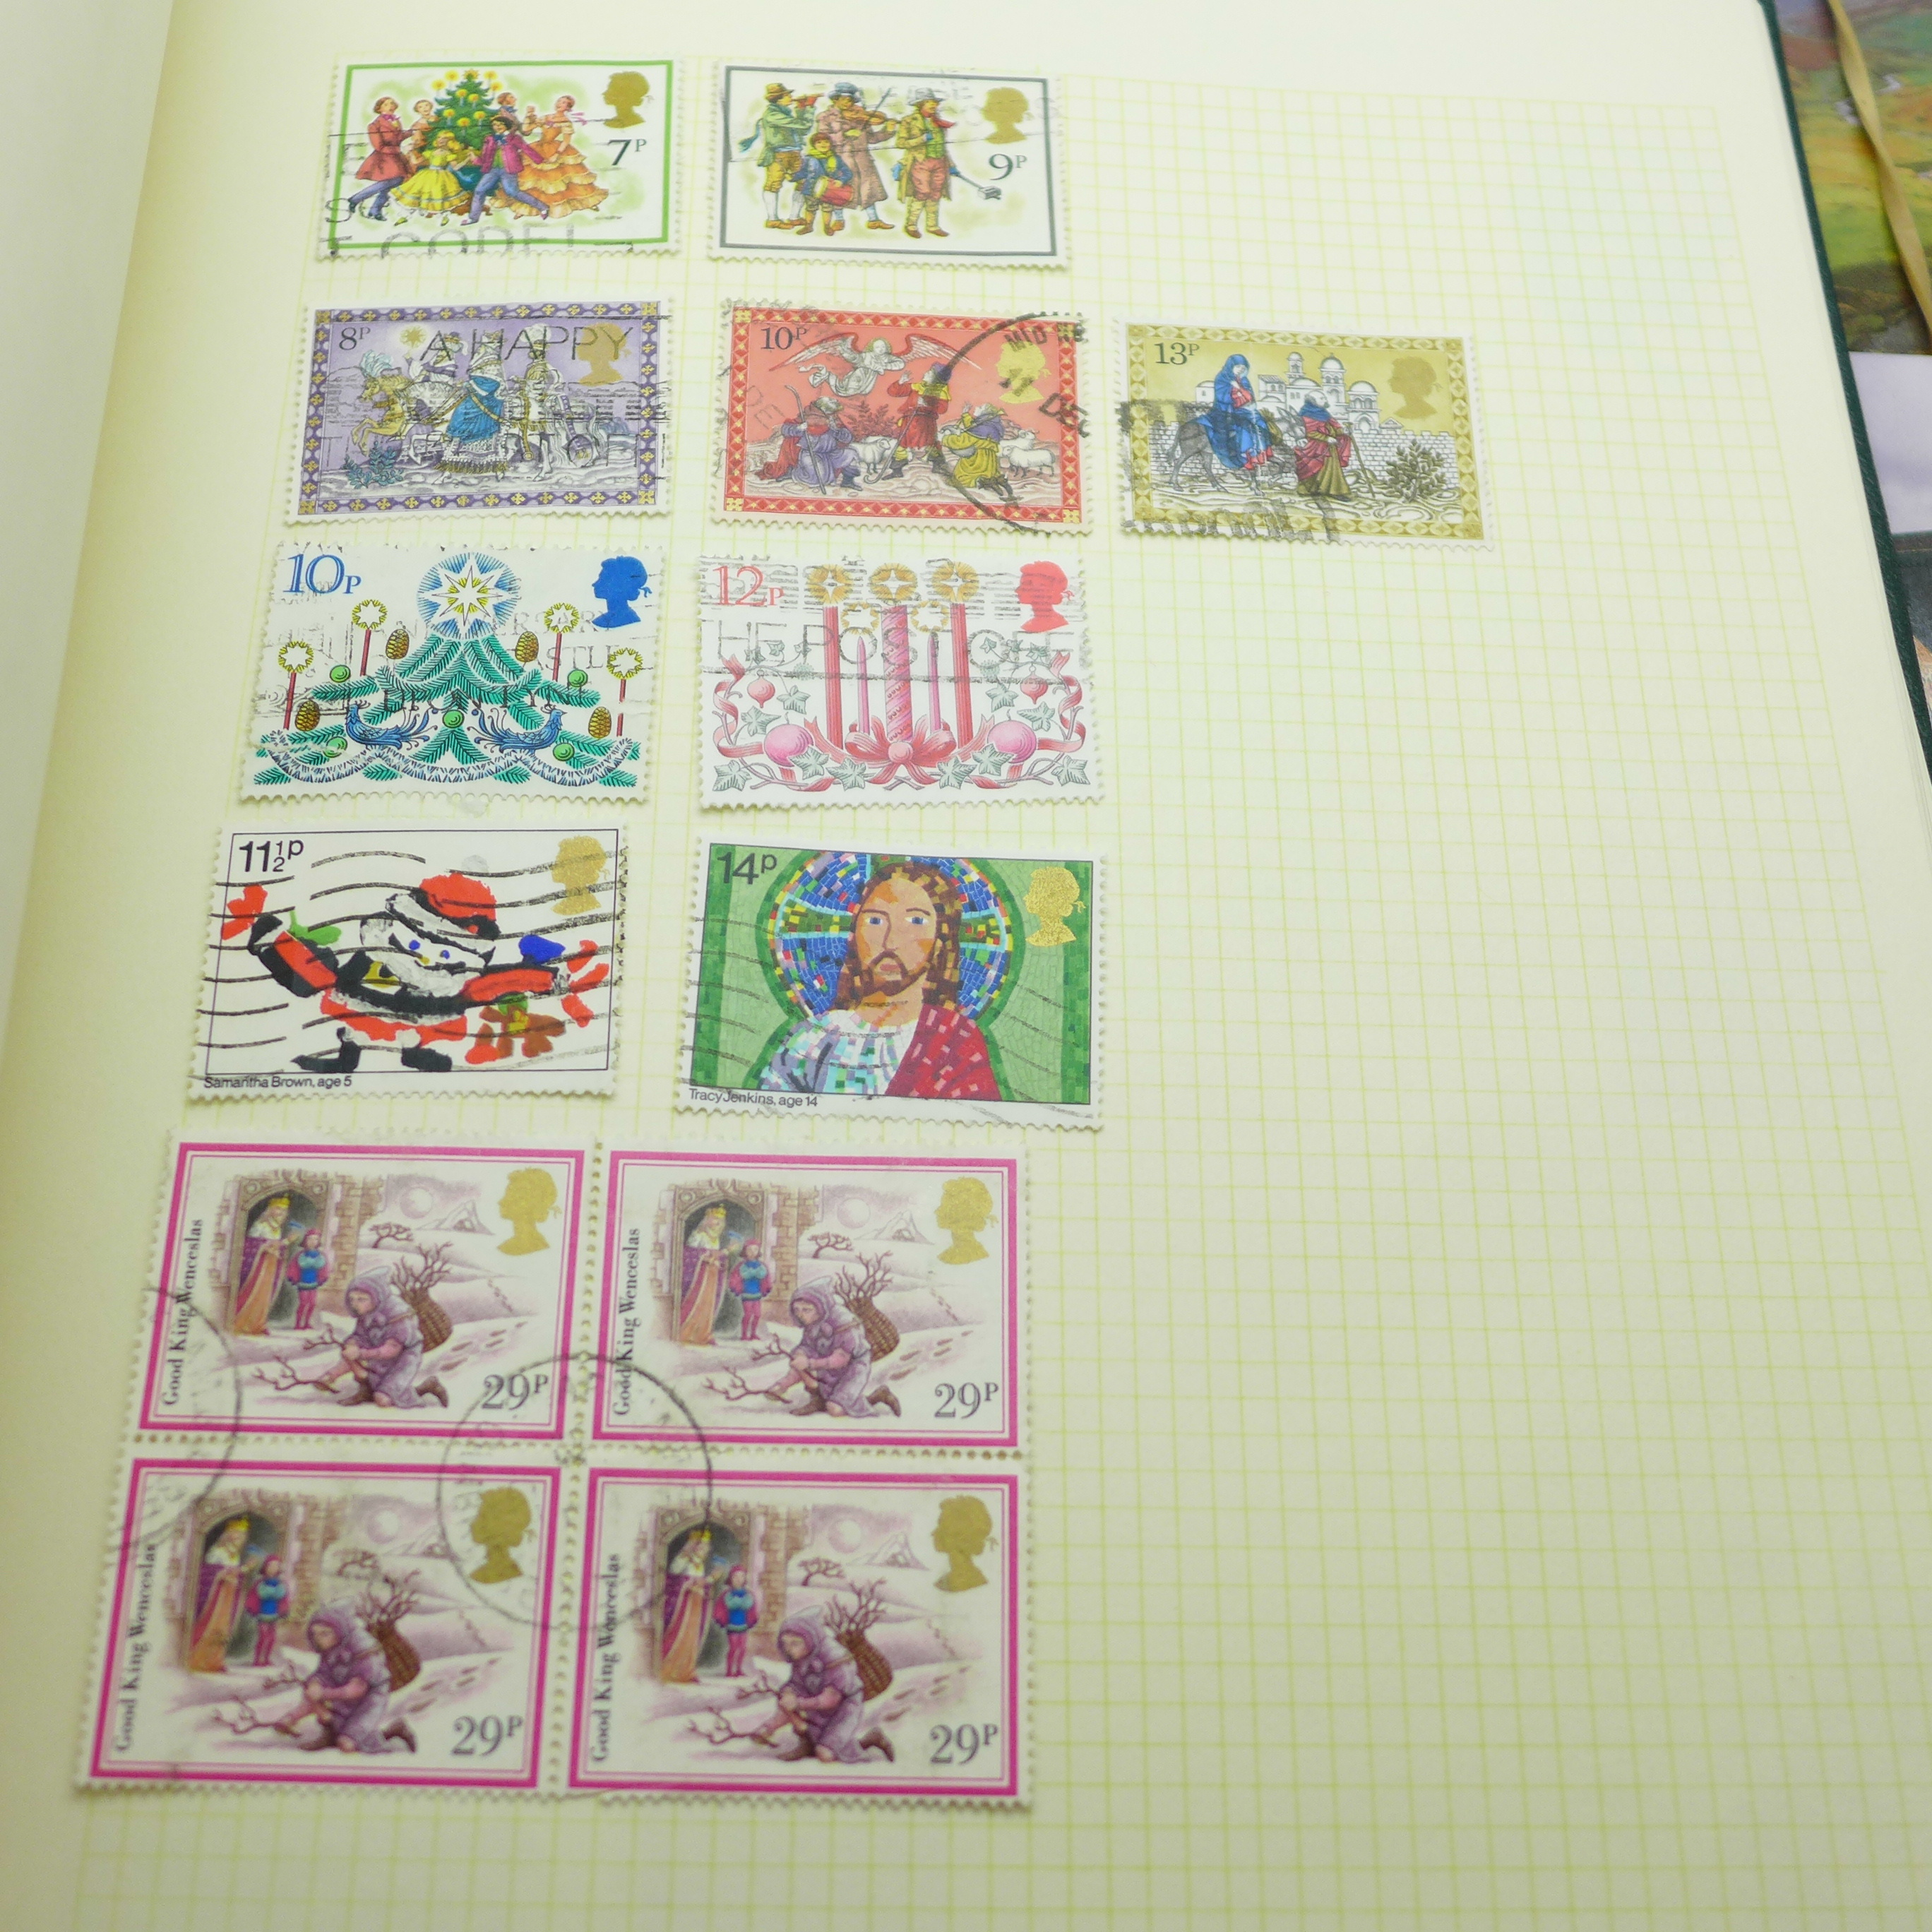 A collection of postcards and a stamp album - Image 6 of 9